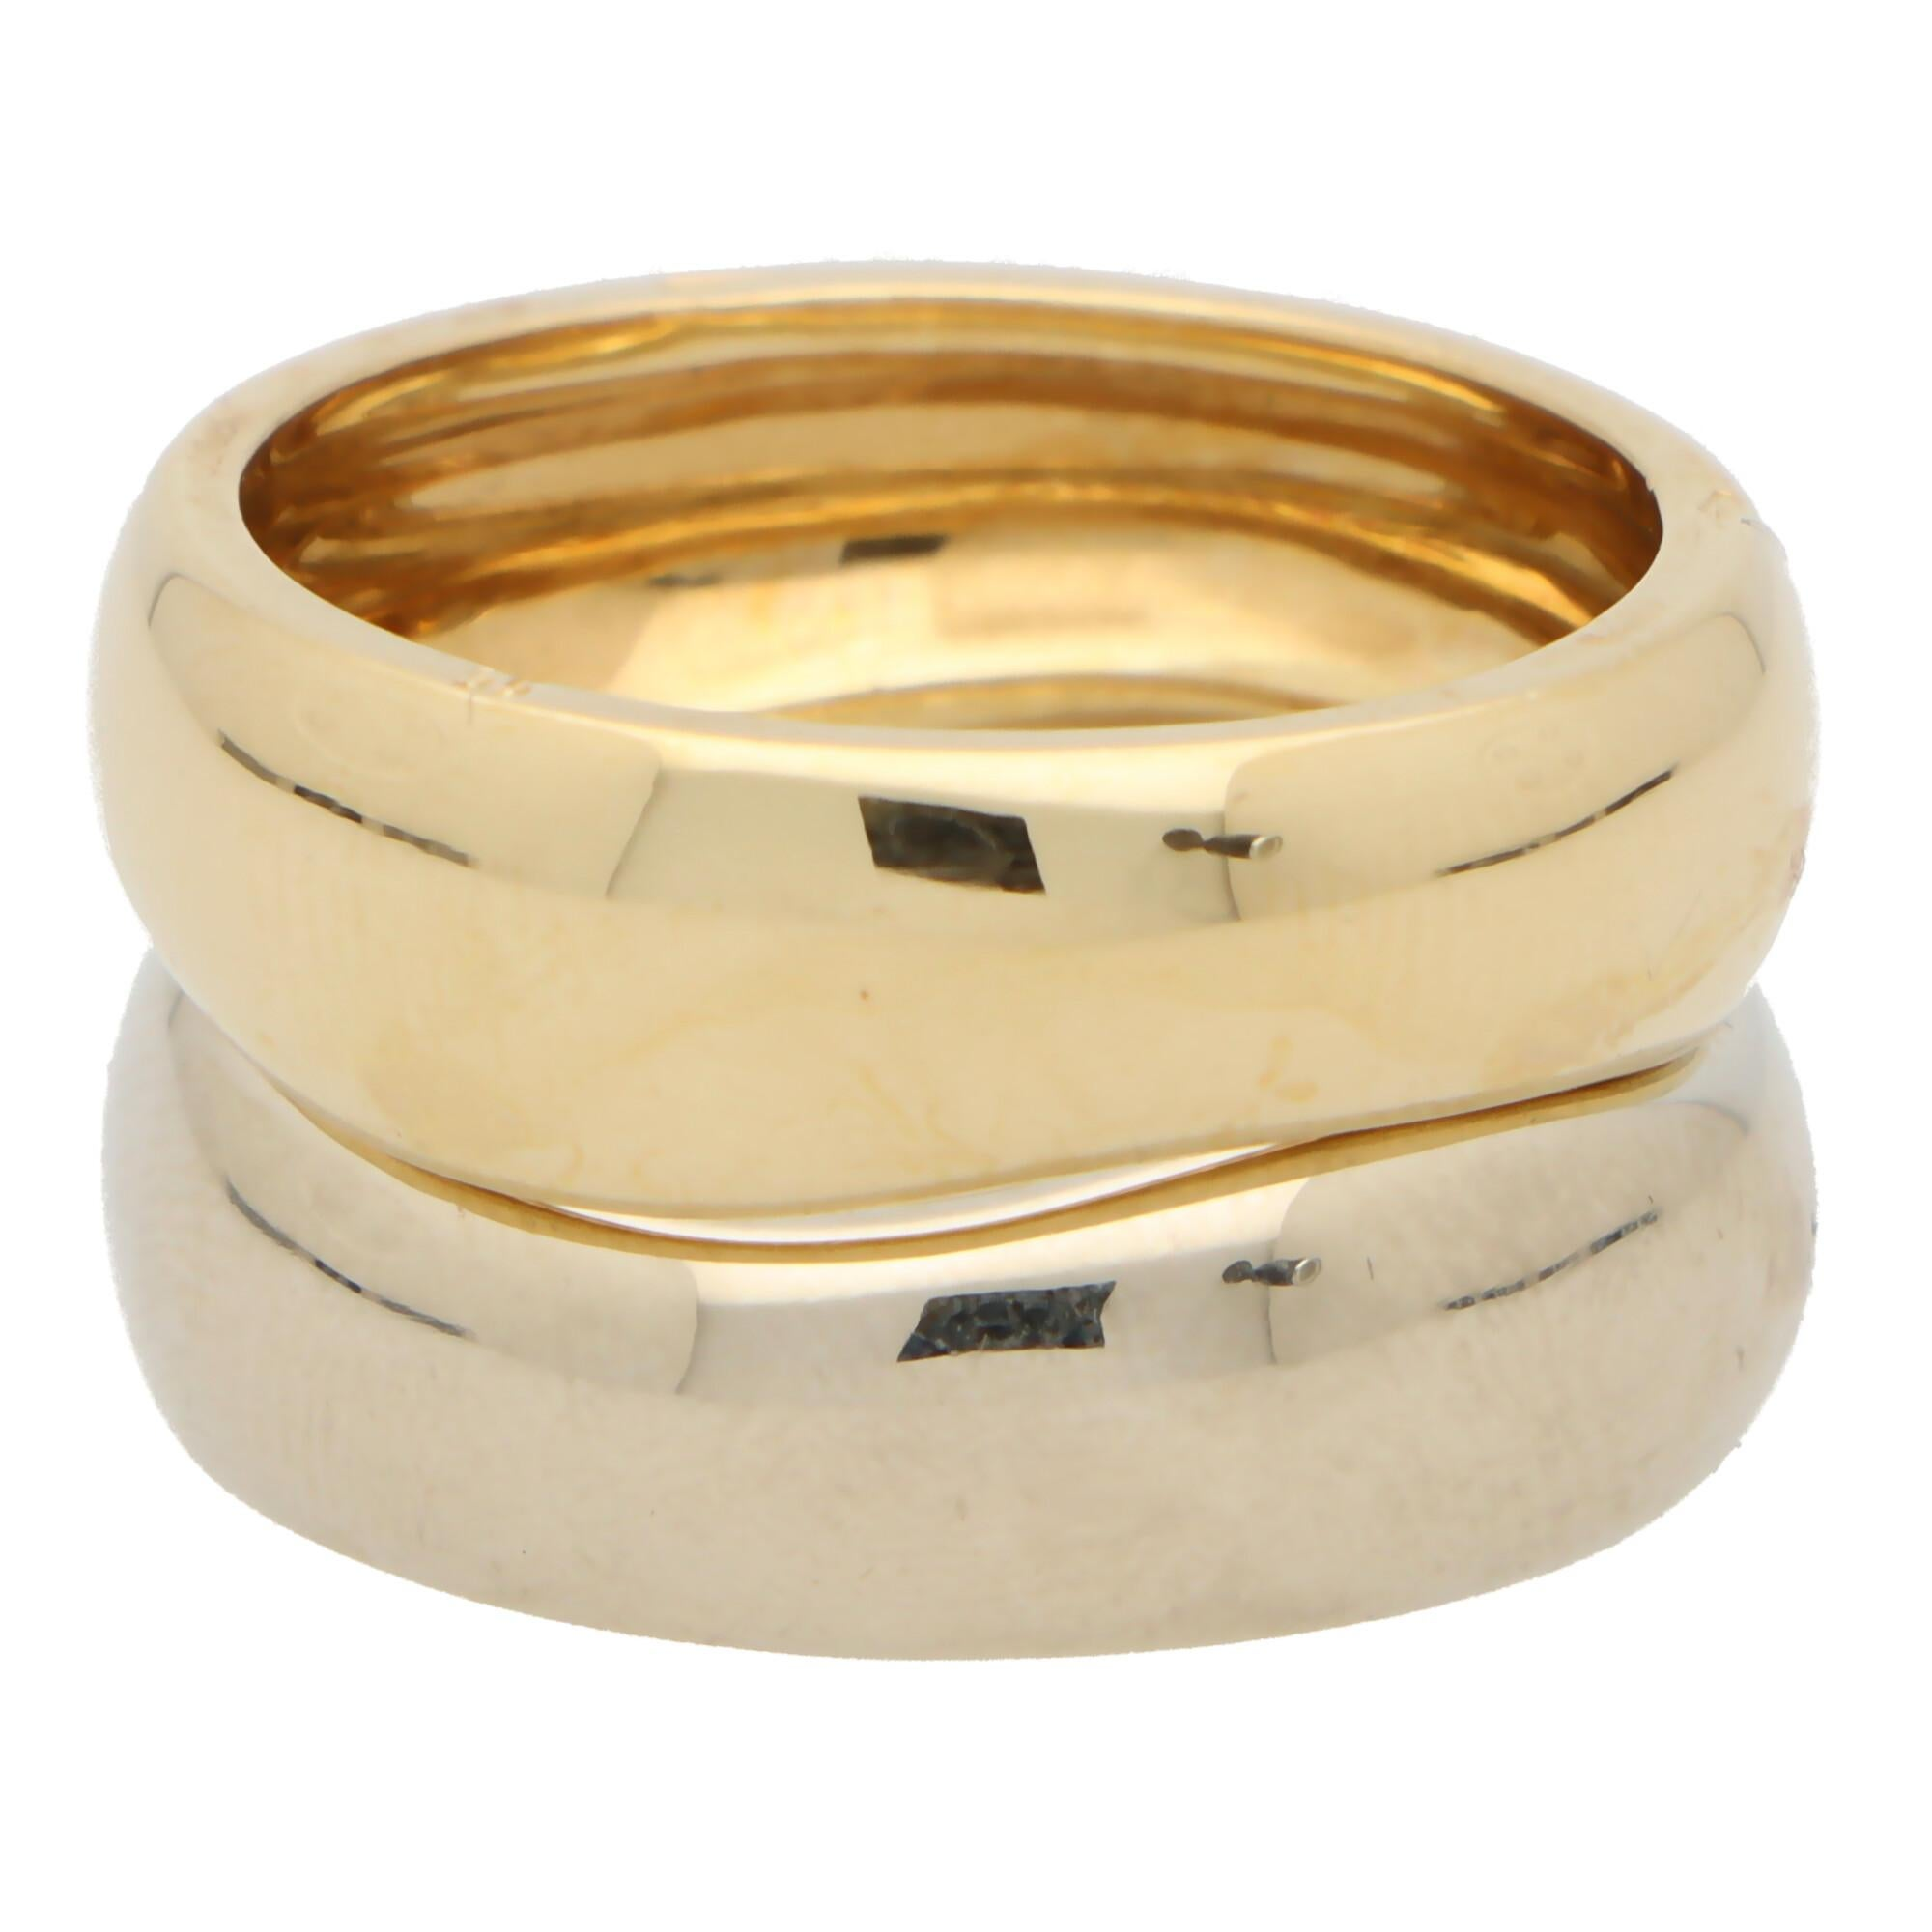 Vintage Cartier Love Me Ring Set in 18k White and Yellow Gold